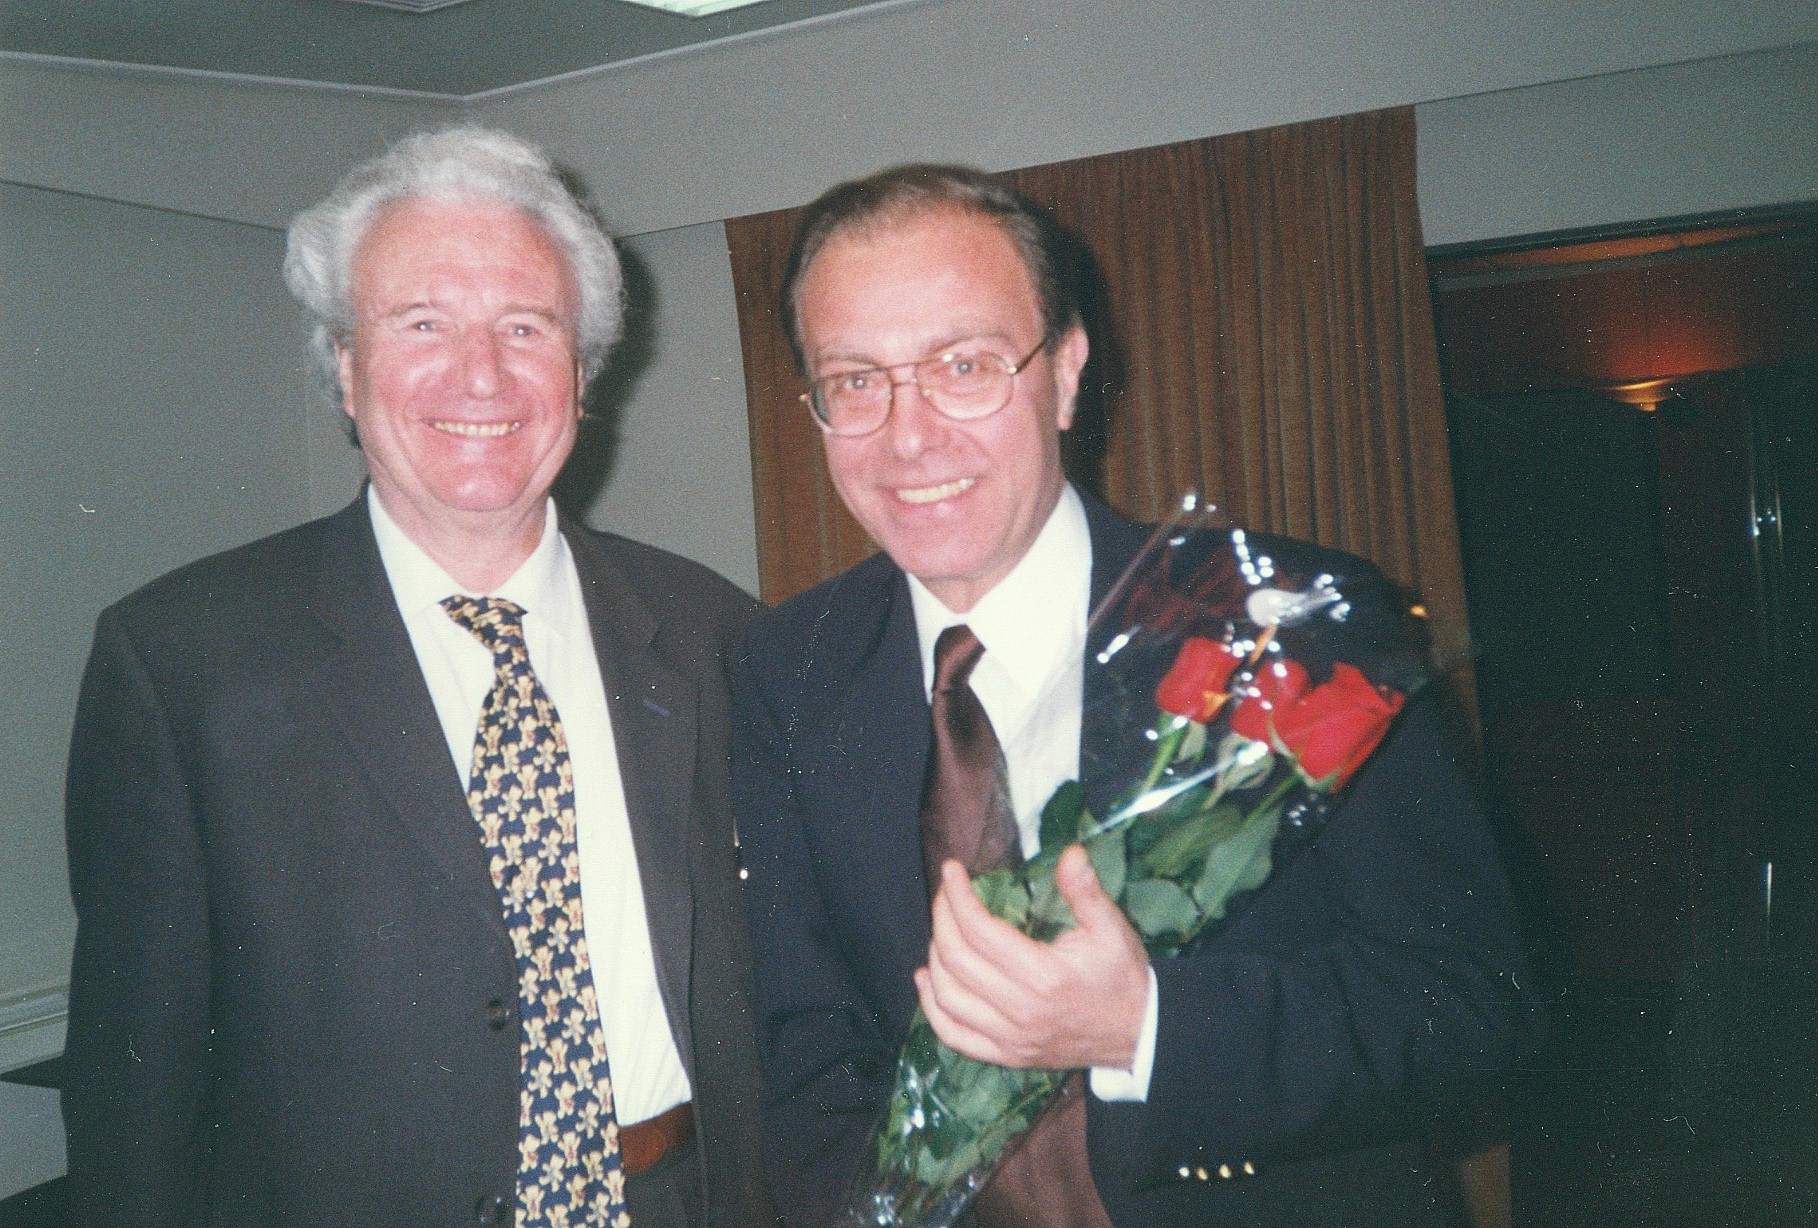 Vakarelis with Sir Colin Davis